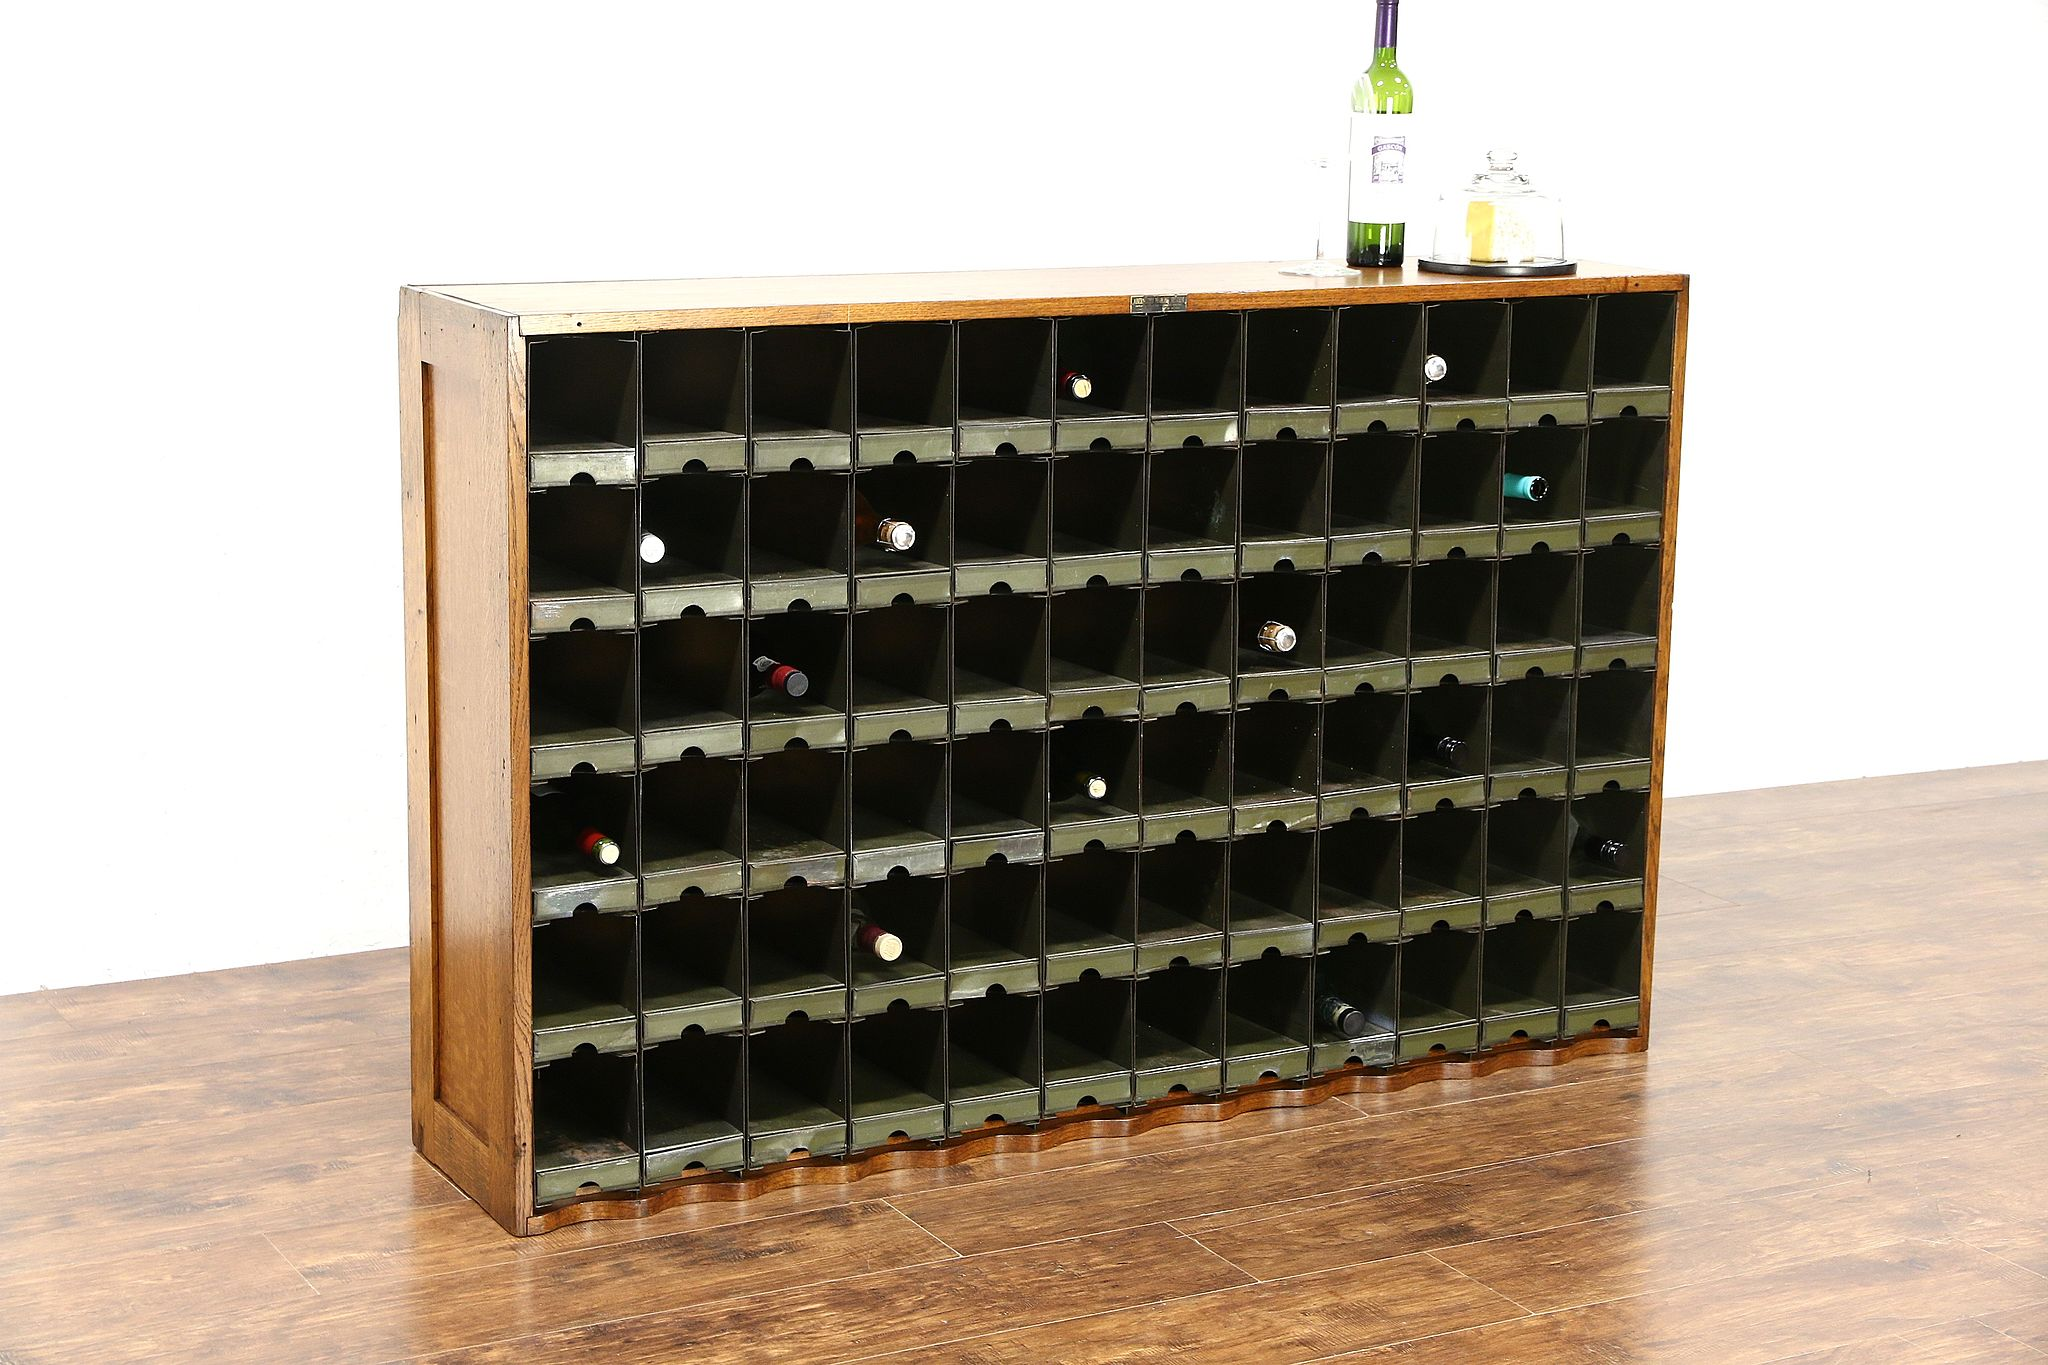 racks cheap jk exciting wells wine tower cabinet modular in side table nifty ah rack sale to upright shelf adams examplary wooden as bottle storage